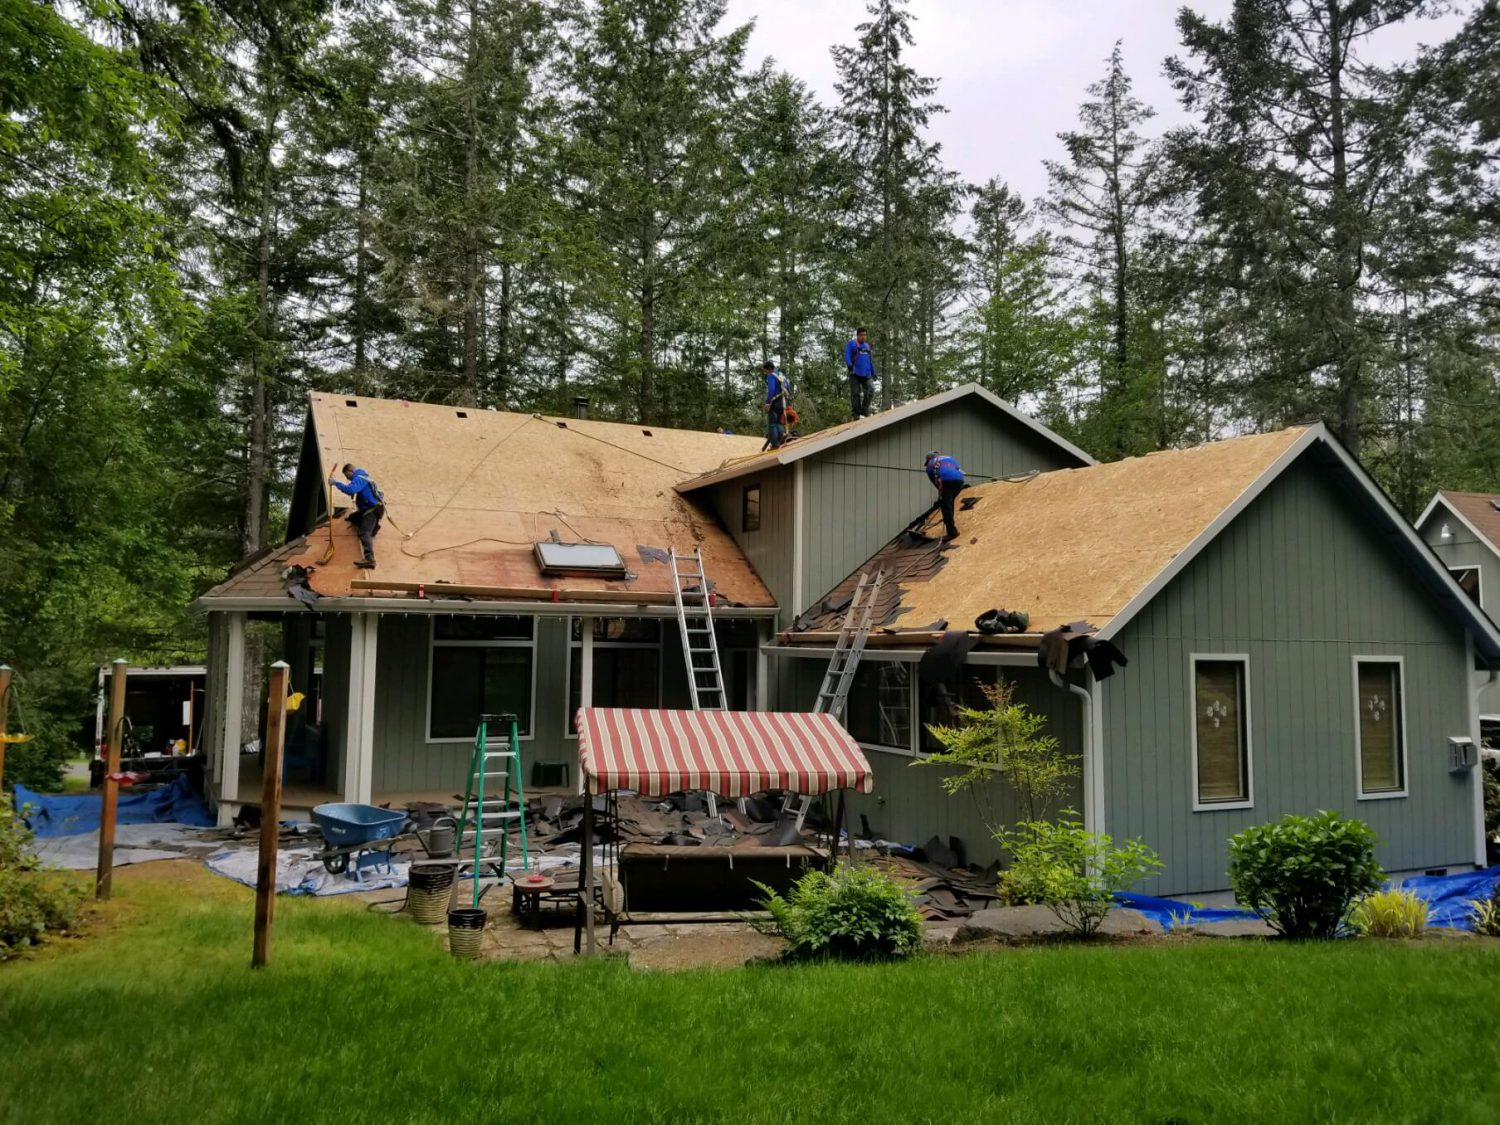 Clearview Exteriors LLC Professional Team Installing a Roof